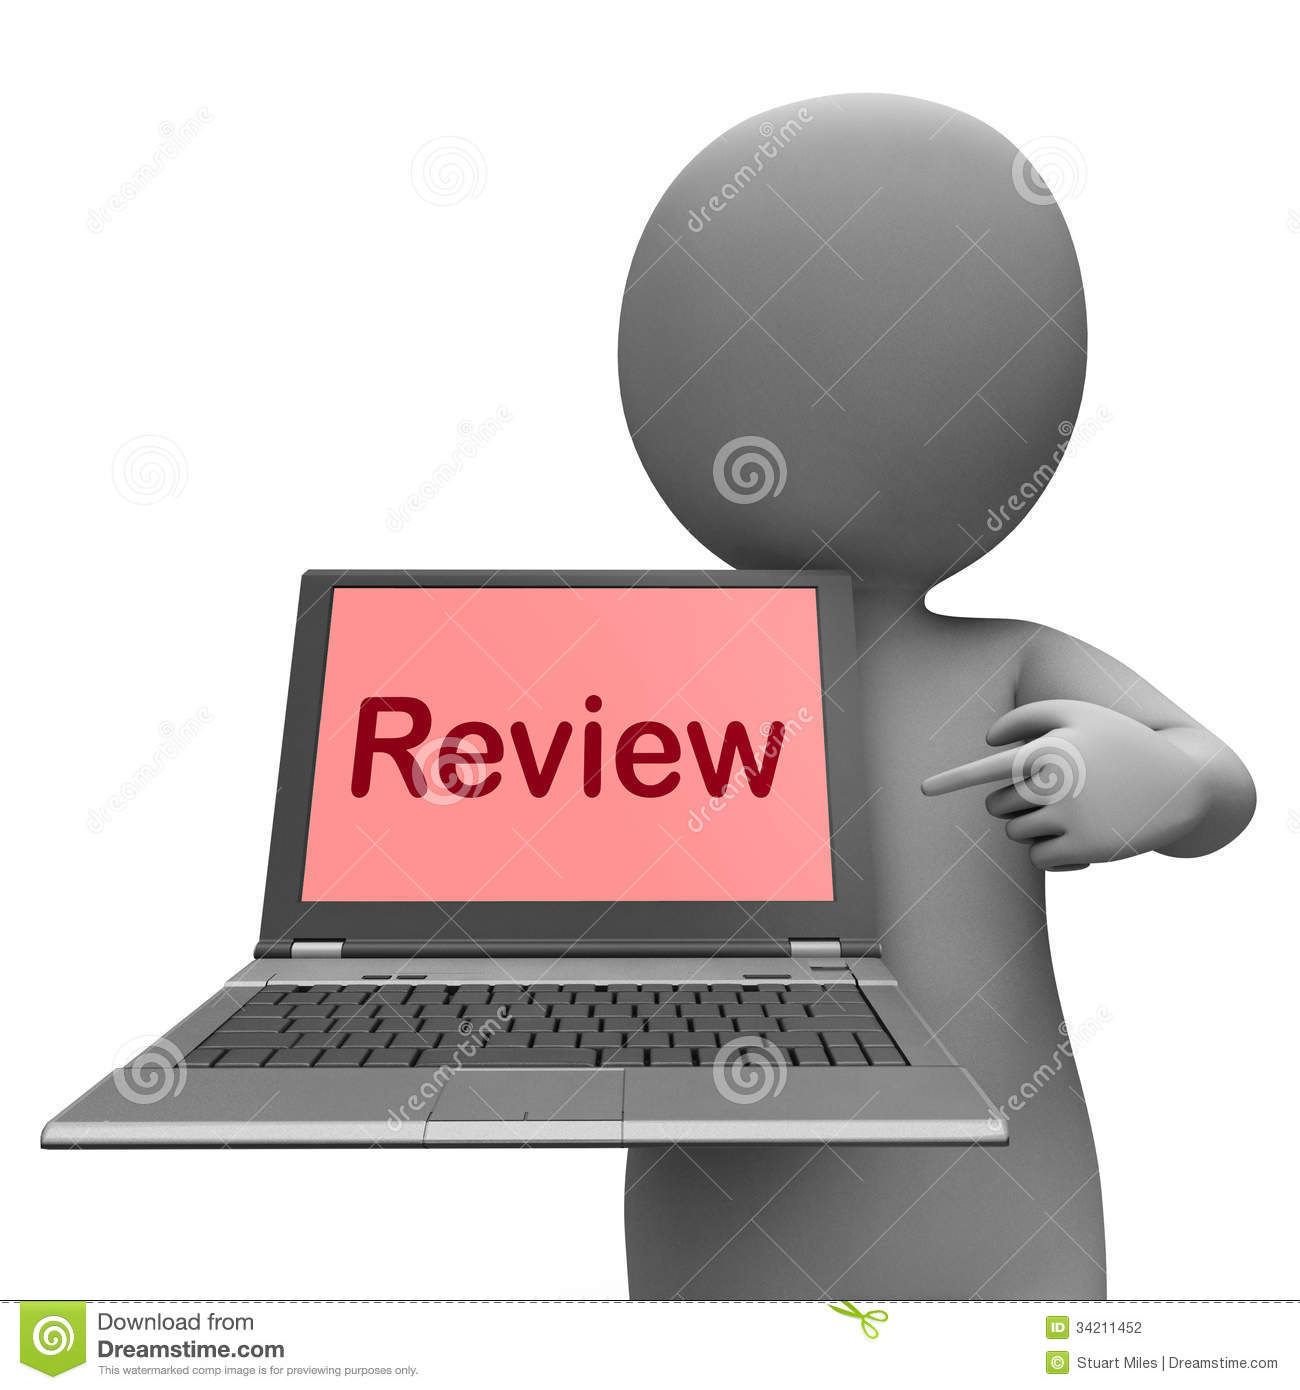 Review Laptop Means Check Evaluate Or Examine Stock